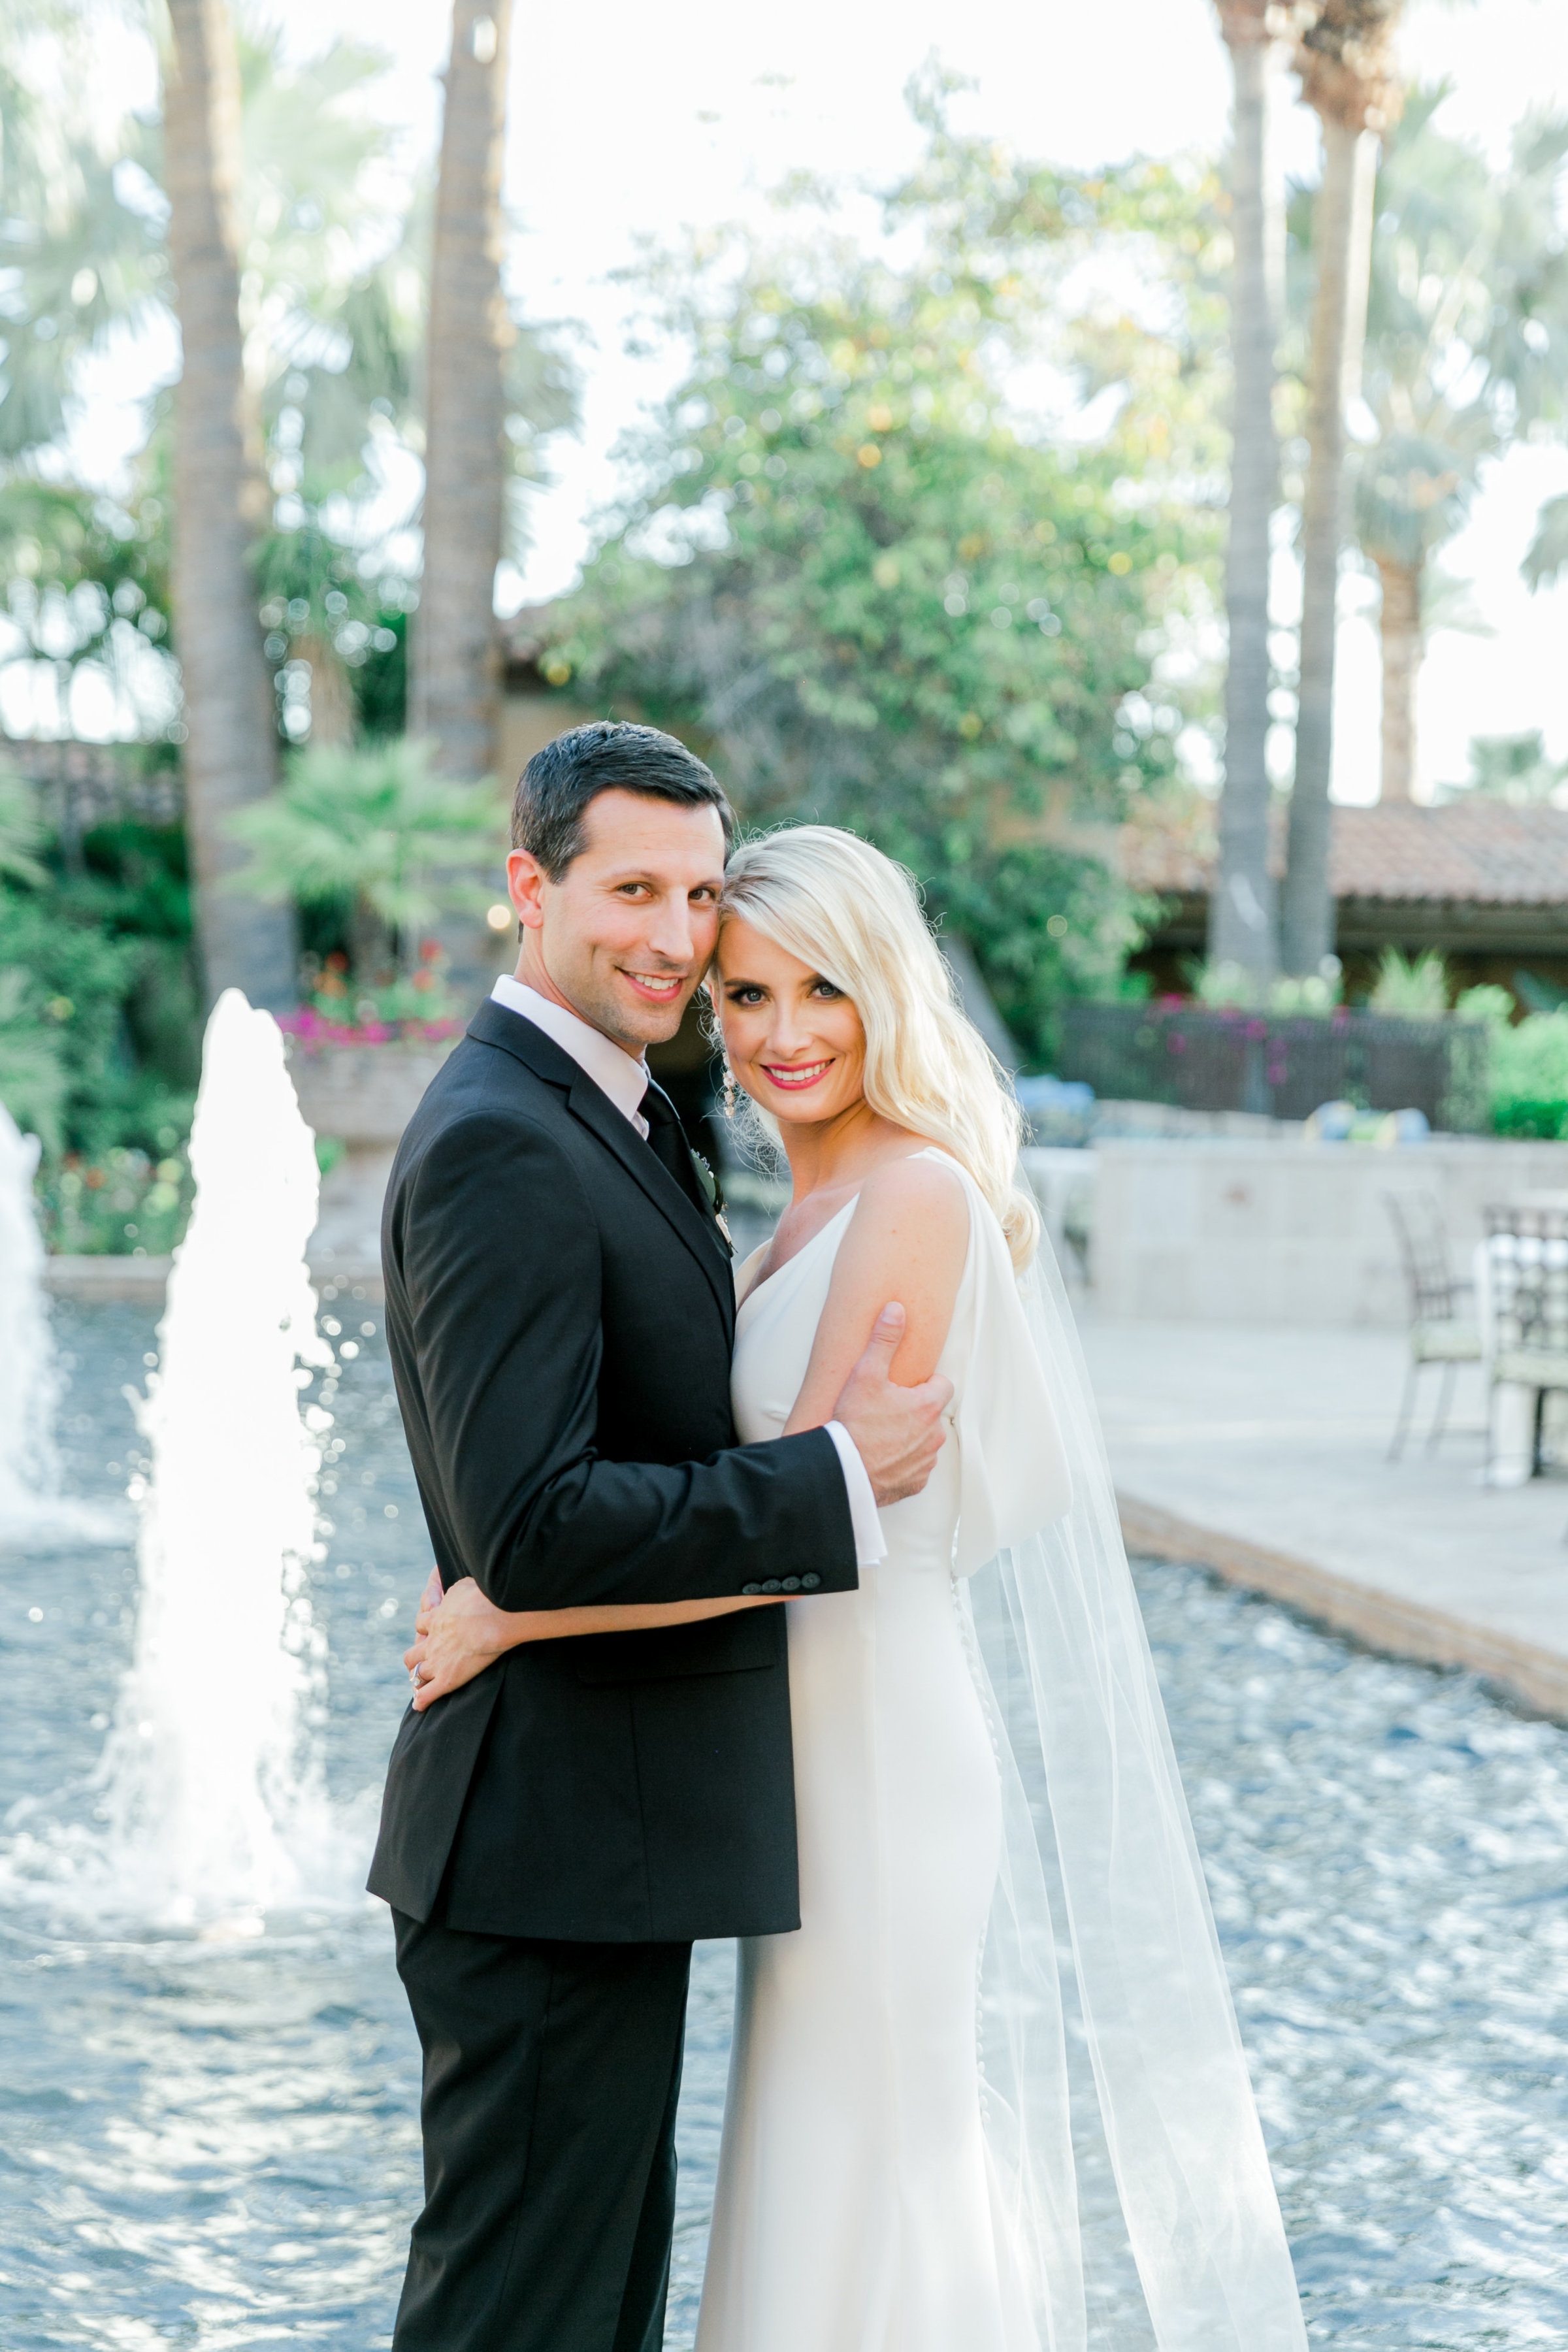 Karlie Colleen Photography - Arizona Wedding - Royal Palms Resort- Alex & Alex-140